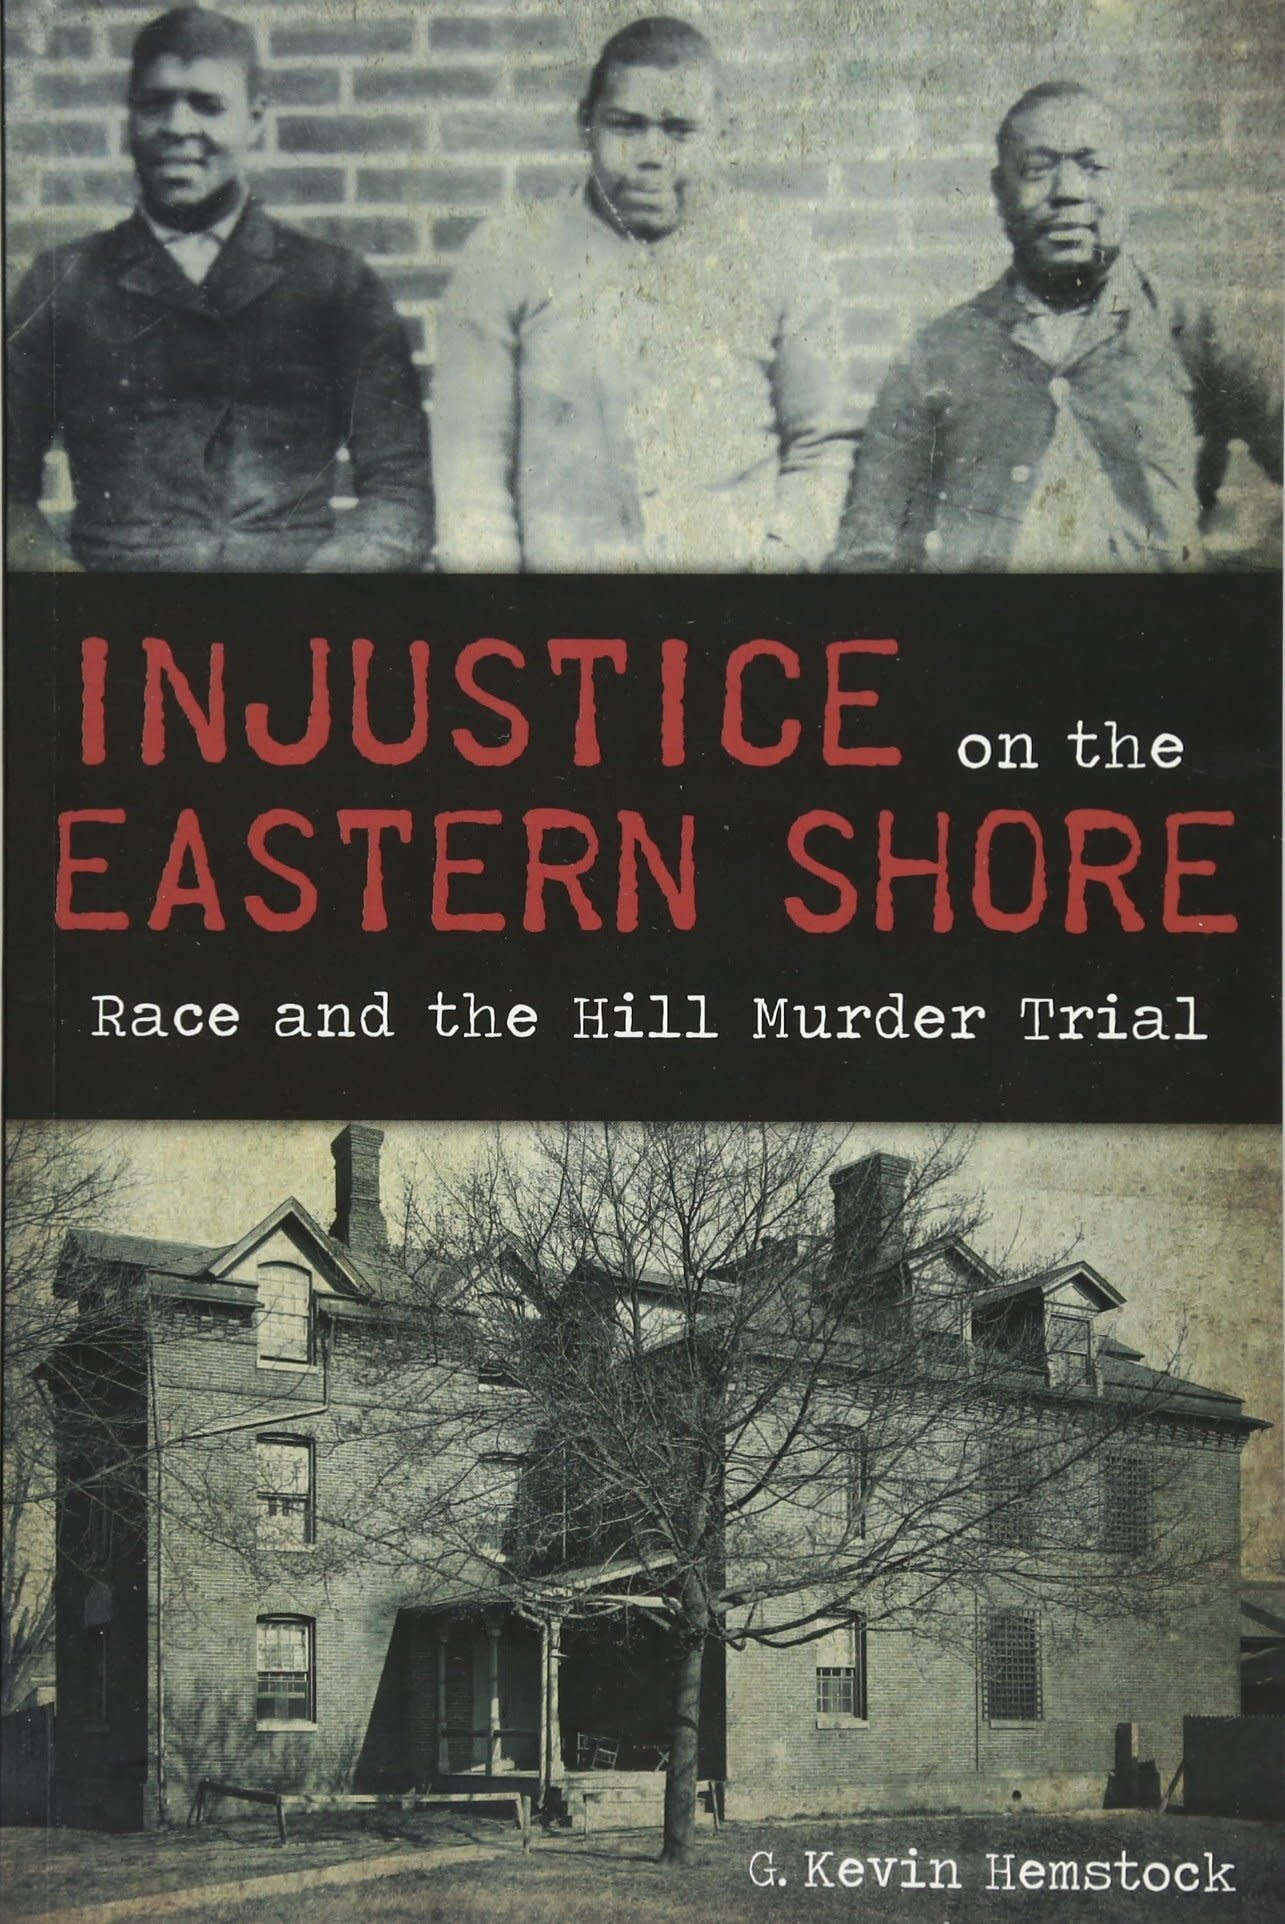 Hemstock- Injustice on the Eastern Shore